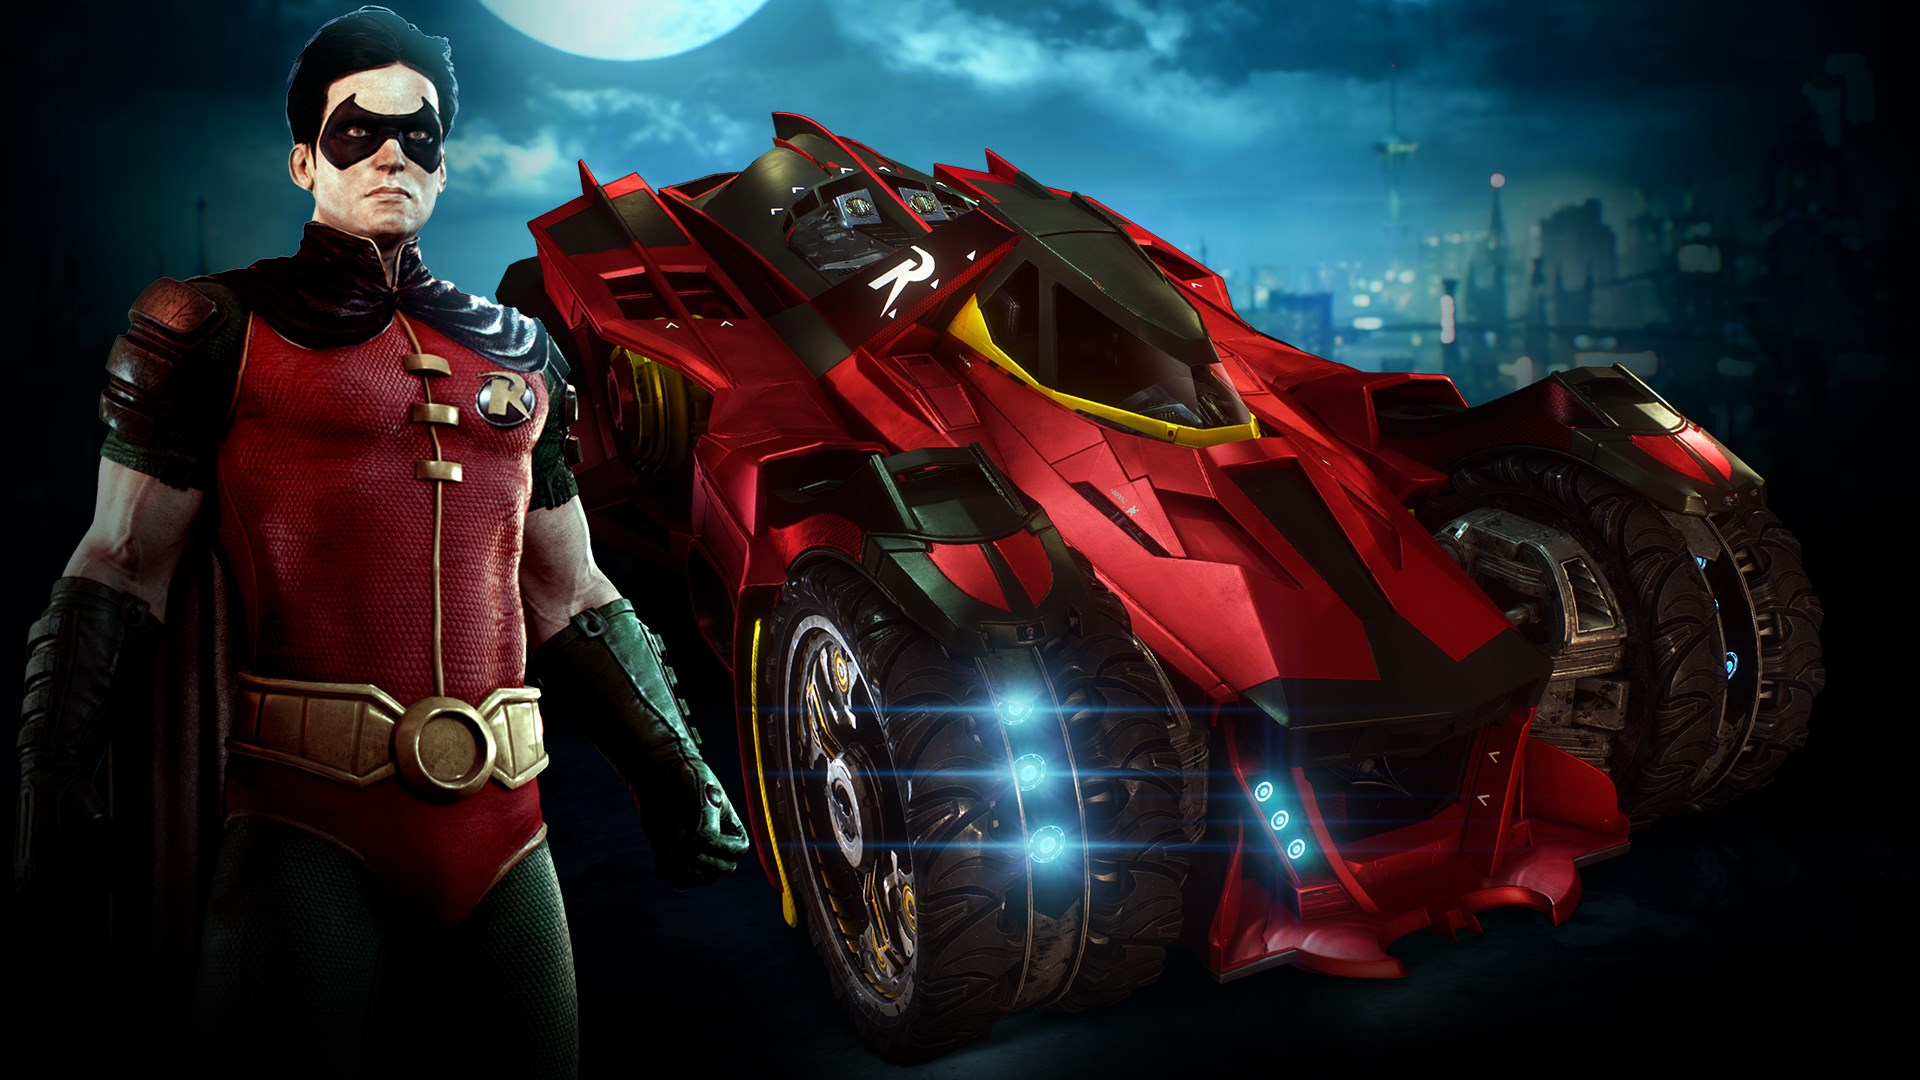 Robin and Batmobile Skins Pack